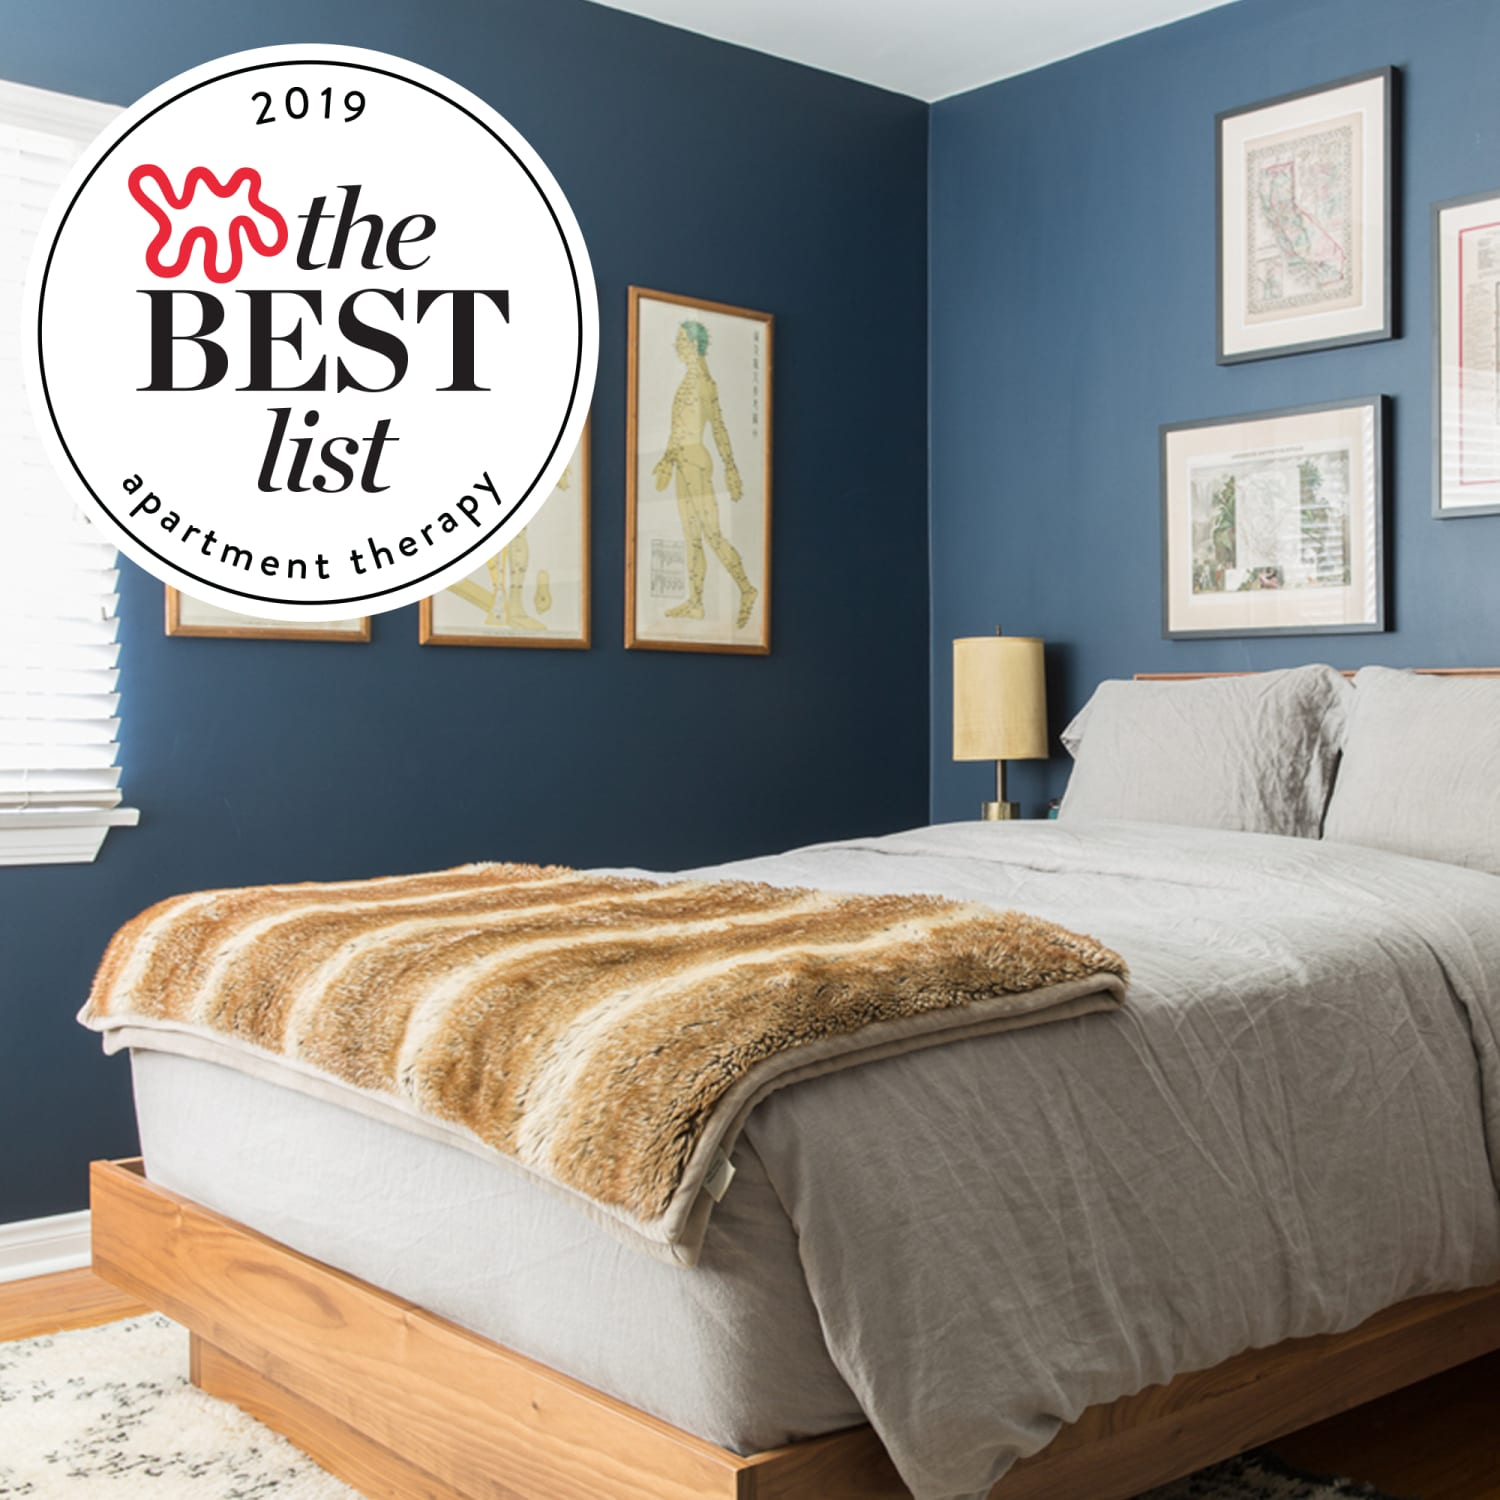 Best Linen Sheets - Linen Sheet Set Reviews | Apartment Therapy